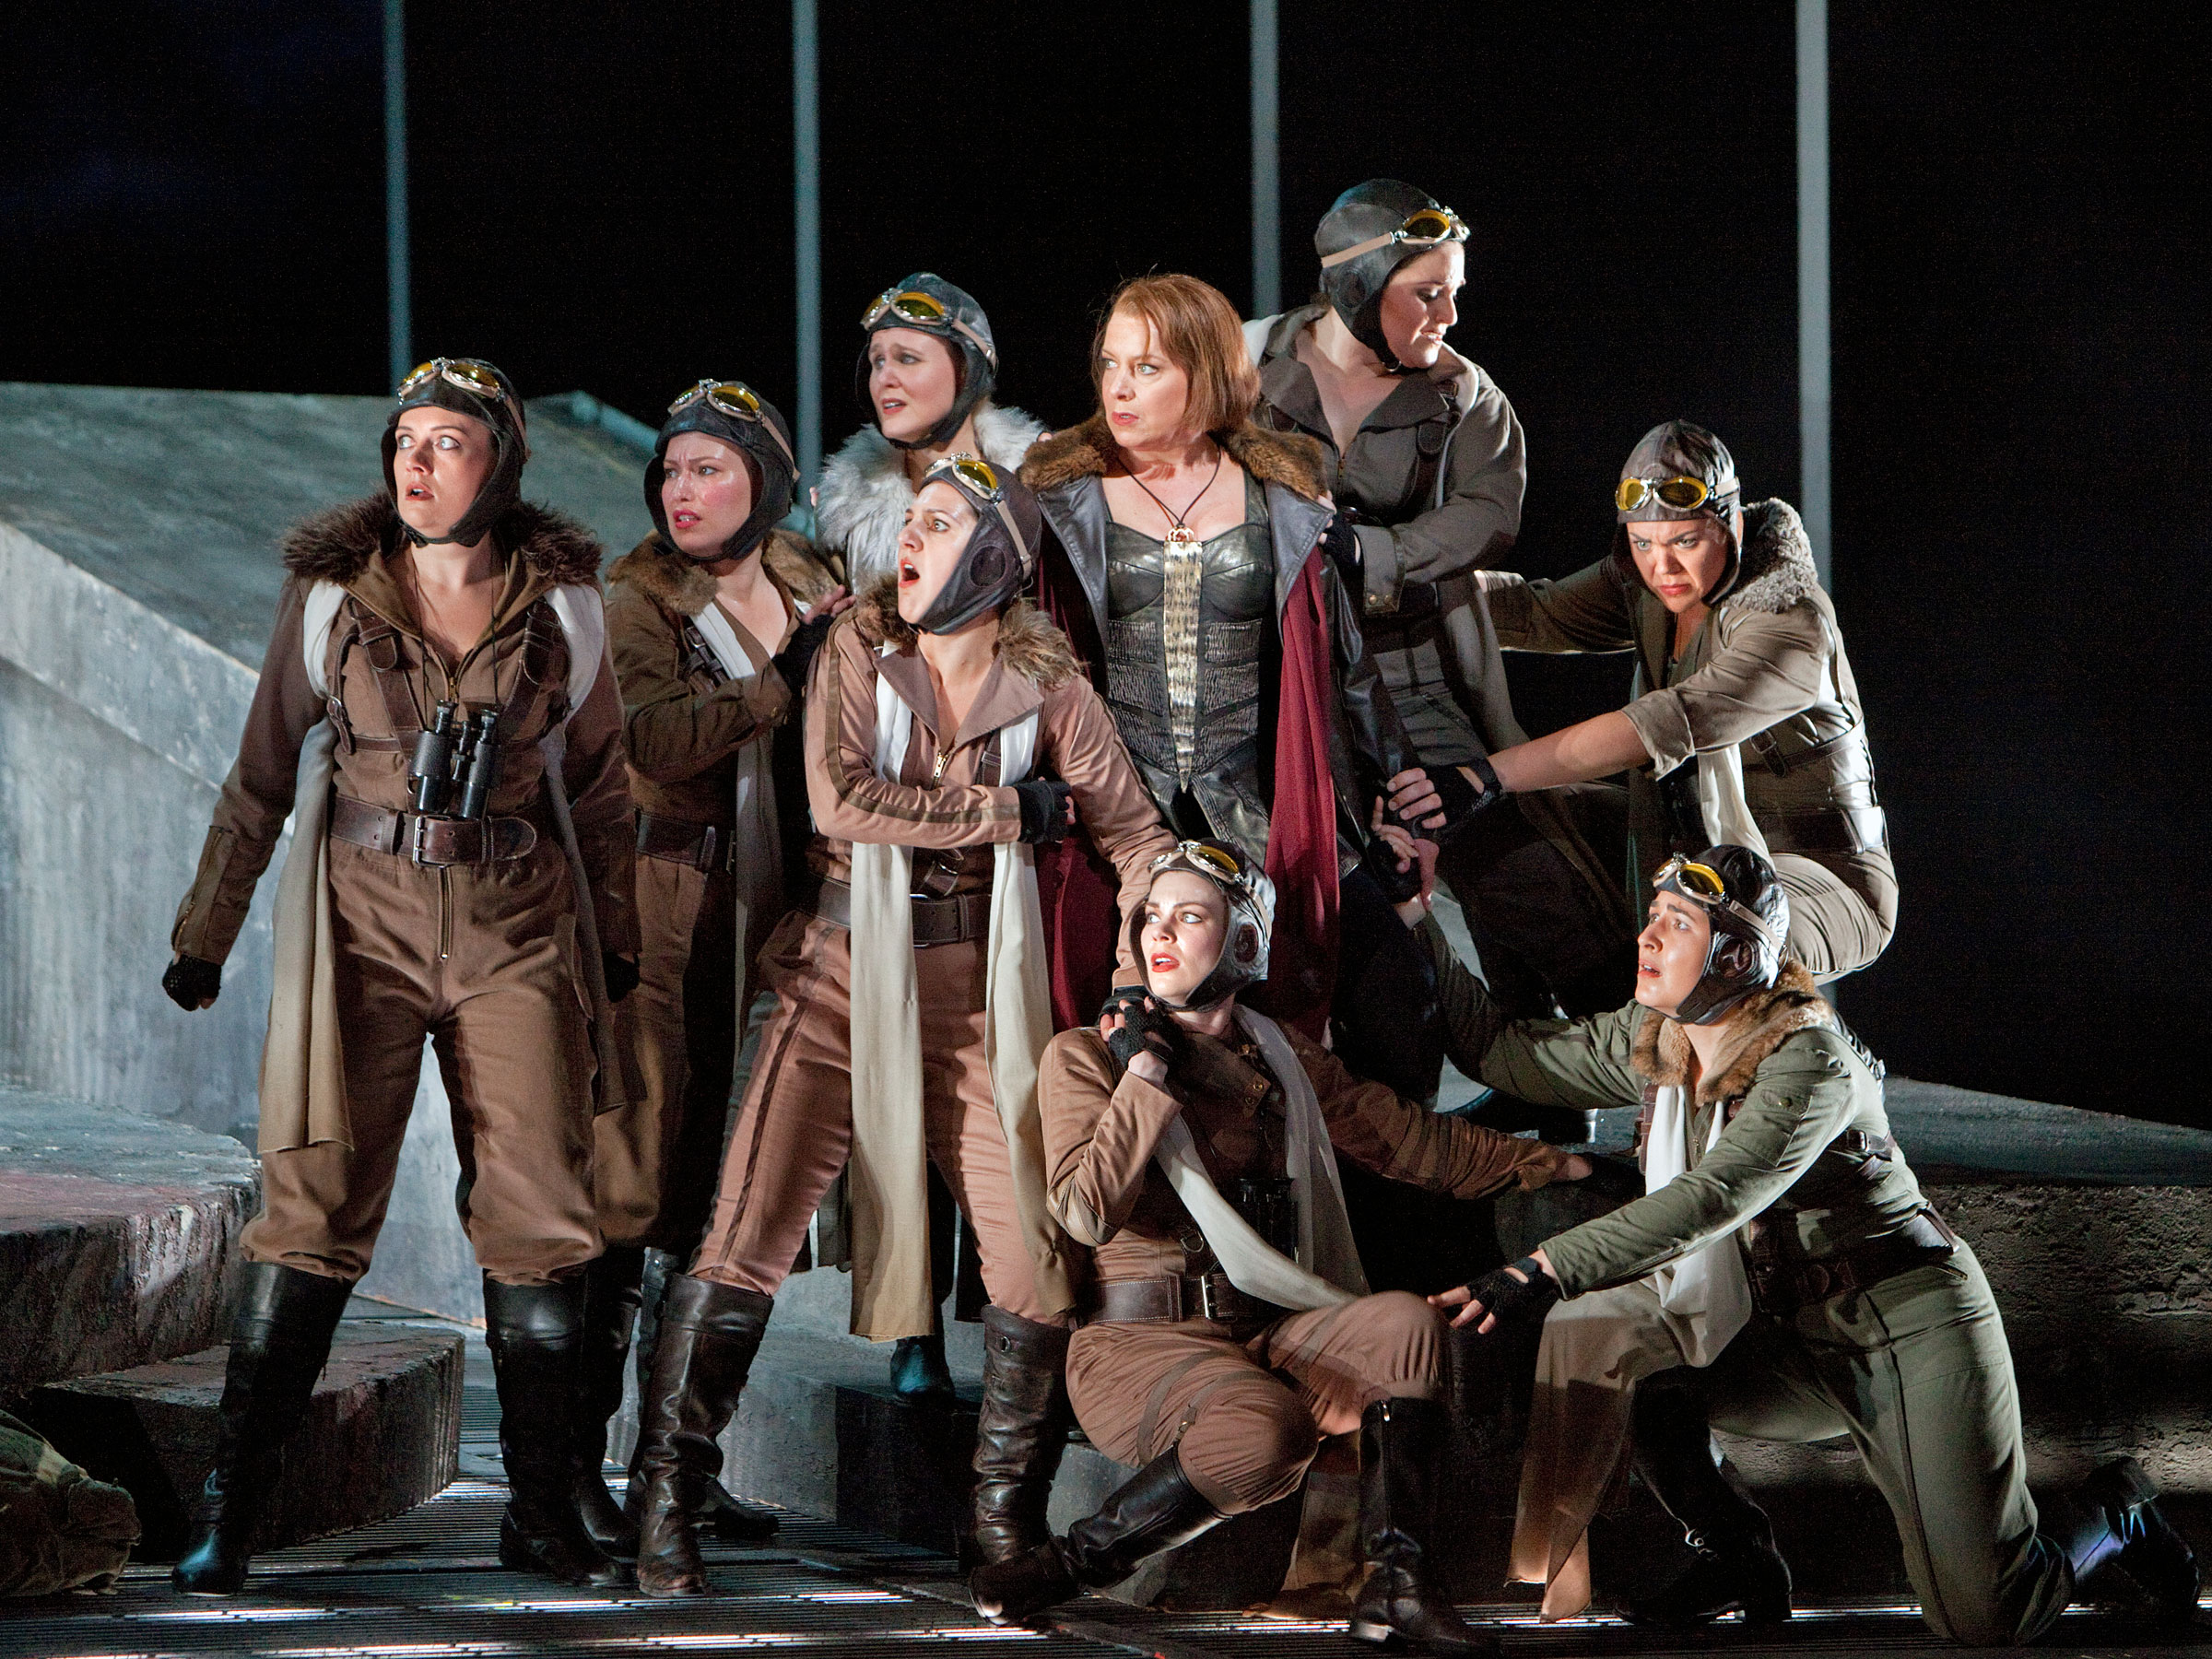 sf Opera production of Die Walküre